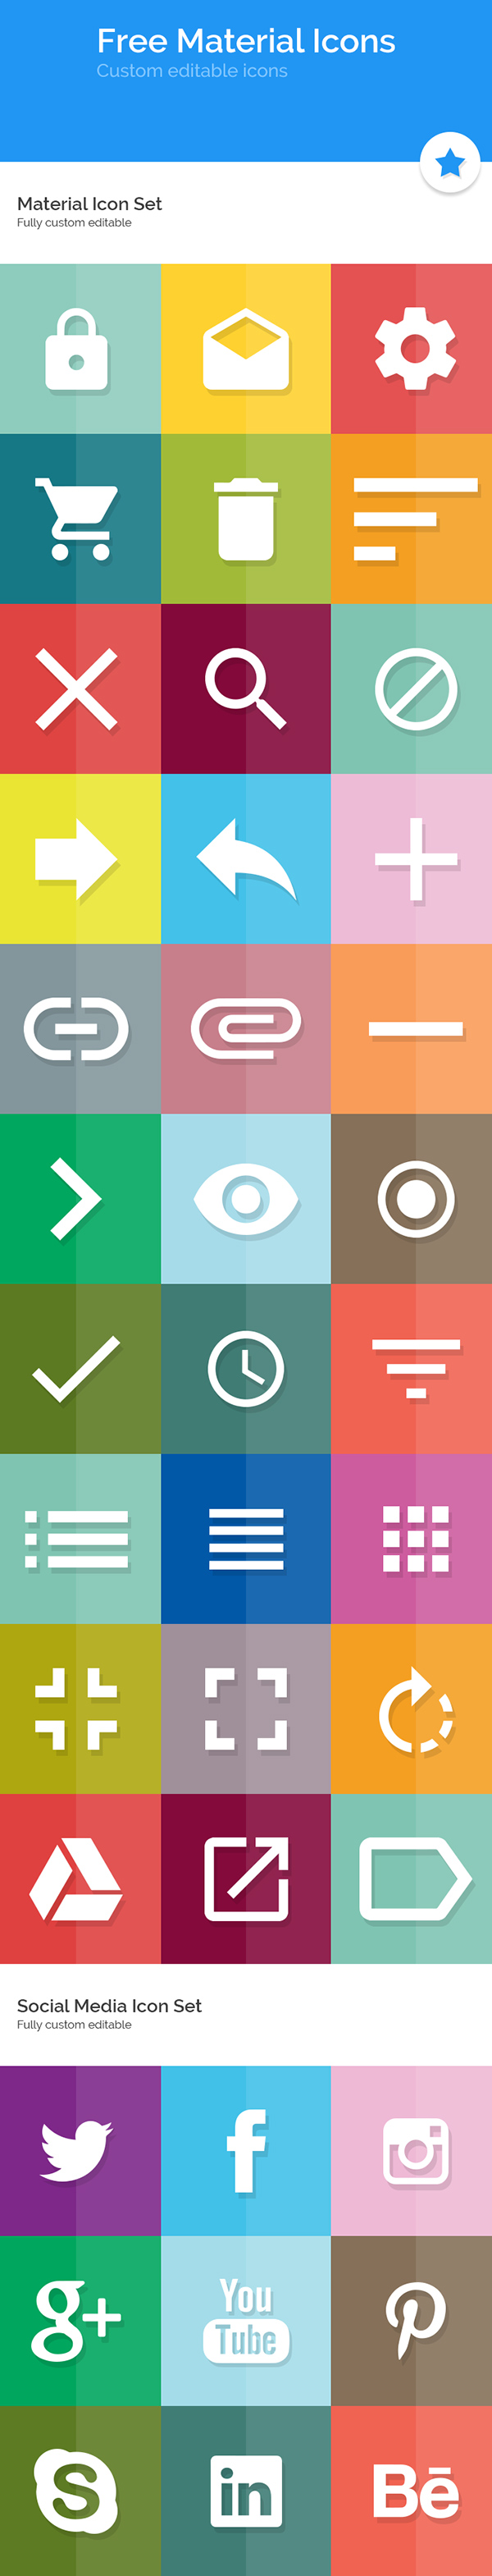 Free-Material-Icon-Set (1)